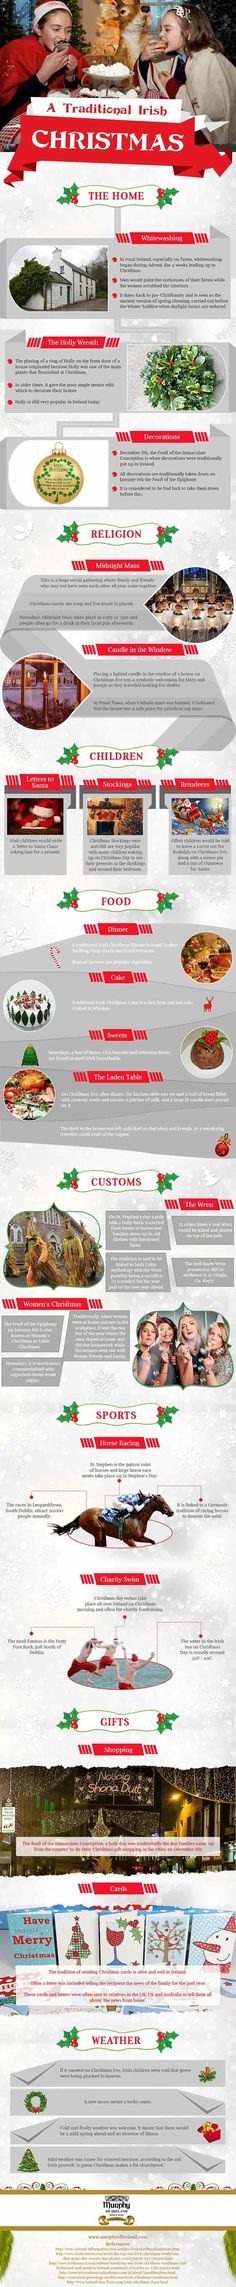 NOLLAIG - an Irish Christmas. The ultimate guide to a traditional Irish Christmas (PHOTO) - IrishCentral.com